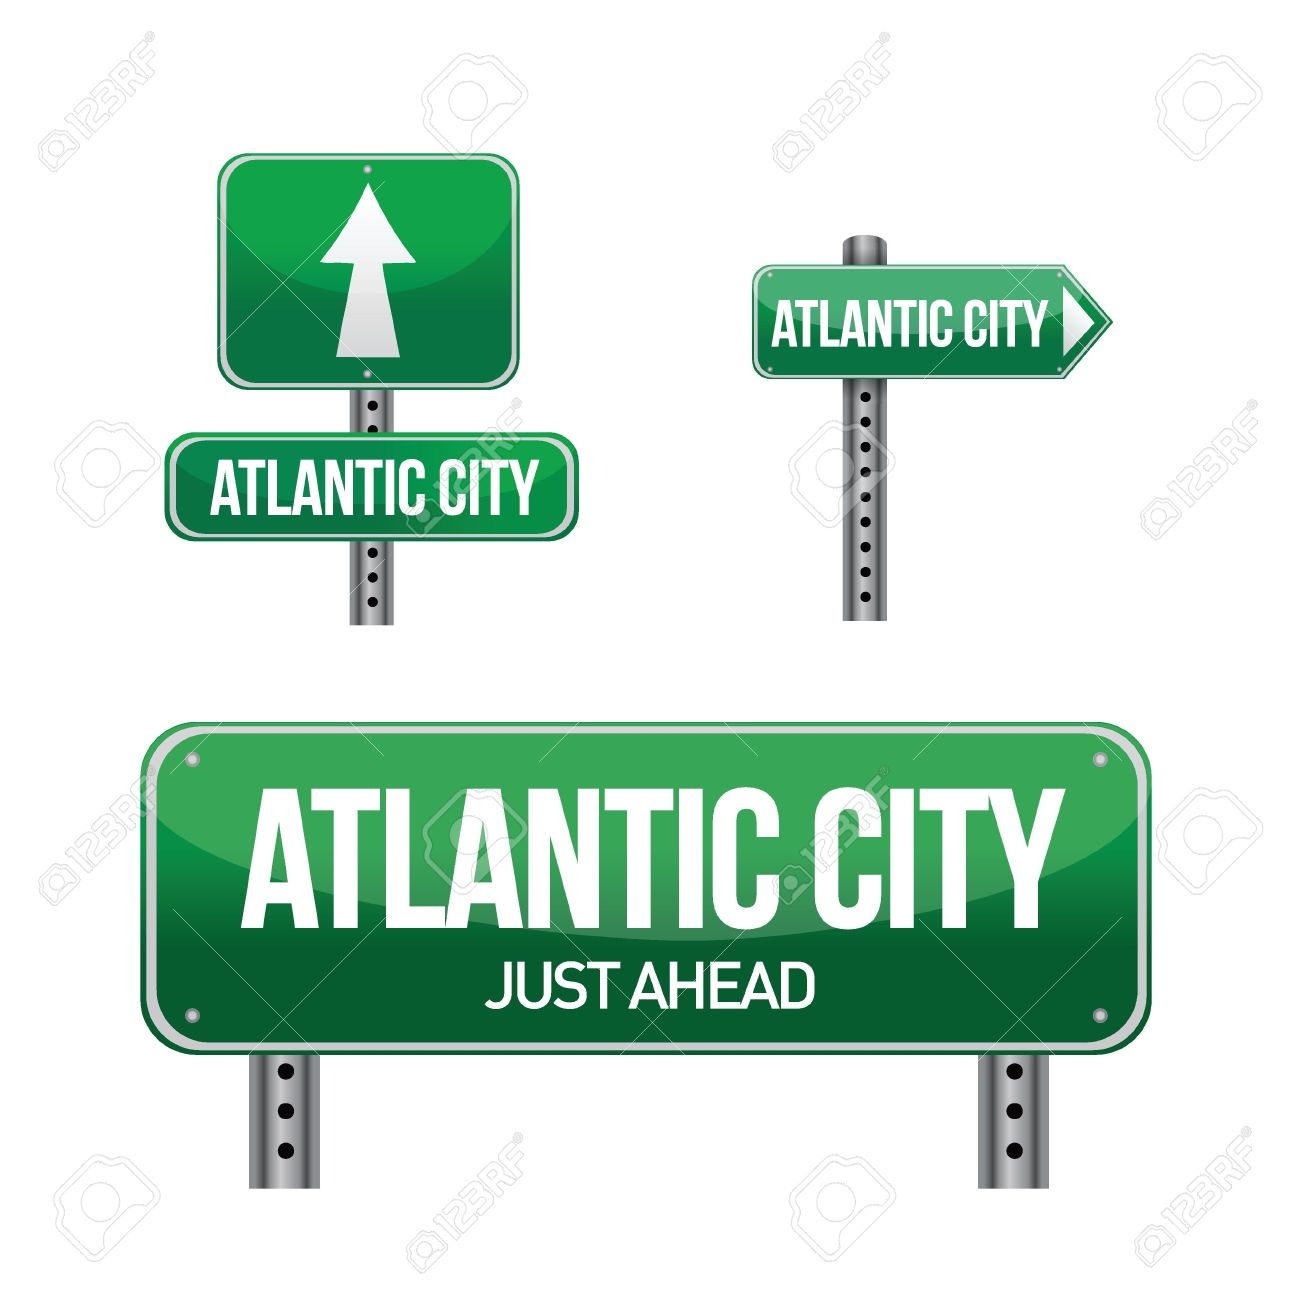 Atlantic City Road Sign Illustration Design Over White Royalty.